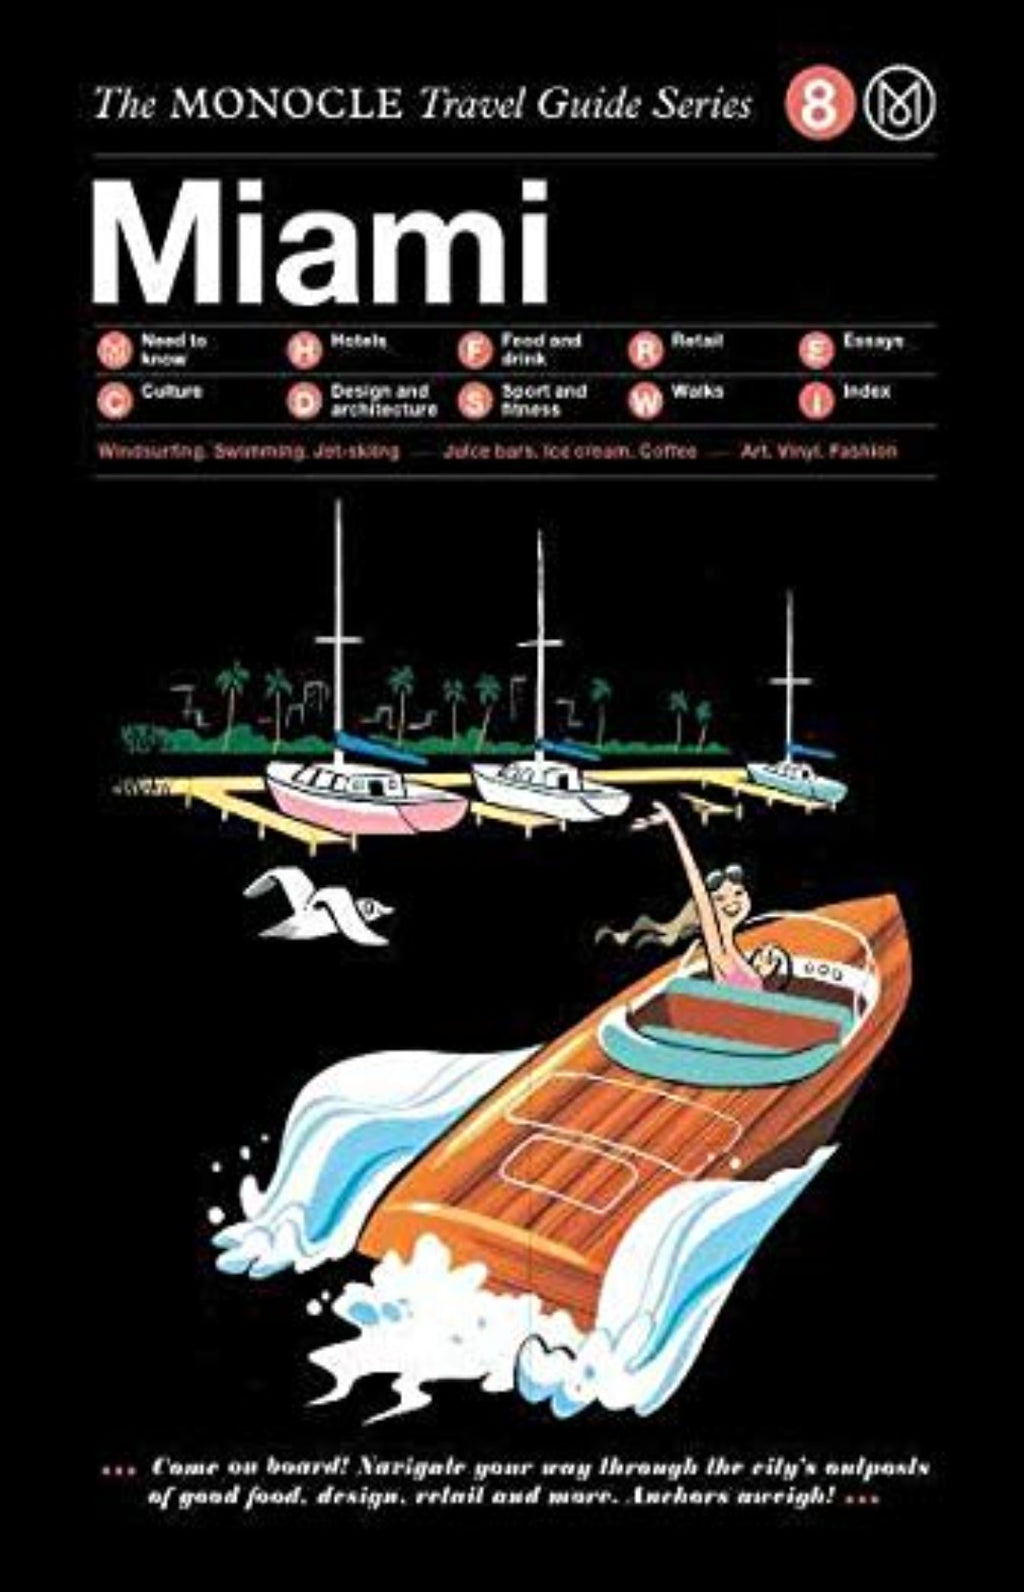 Miami - The Monocle Travel Guide Series 8